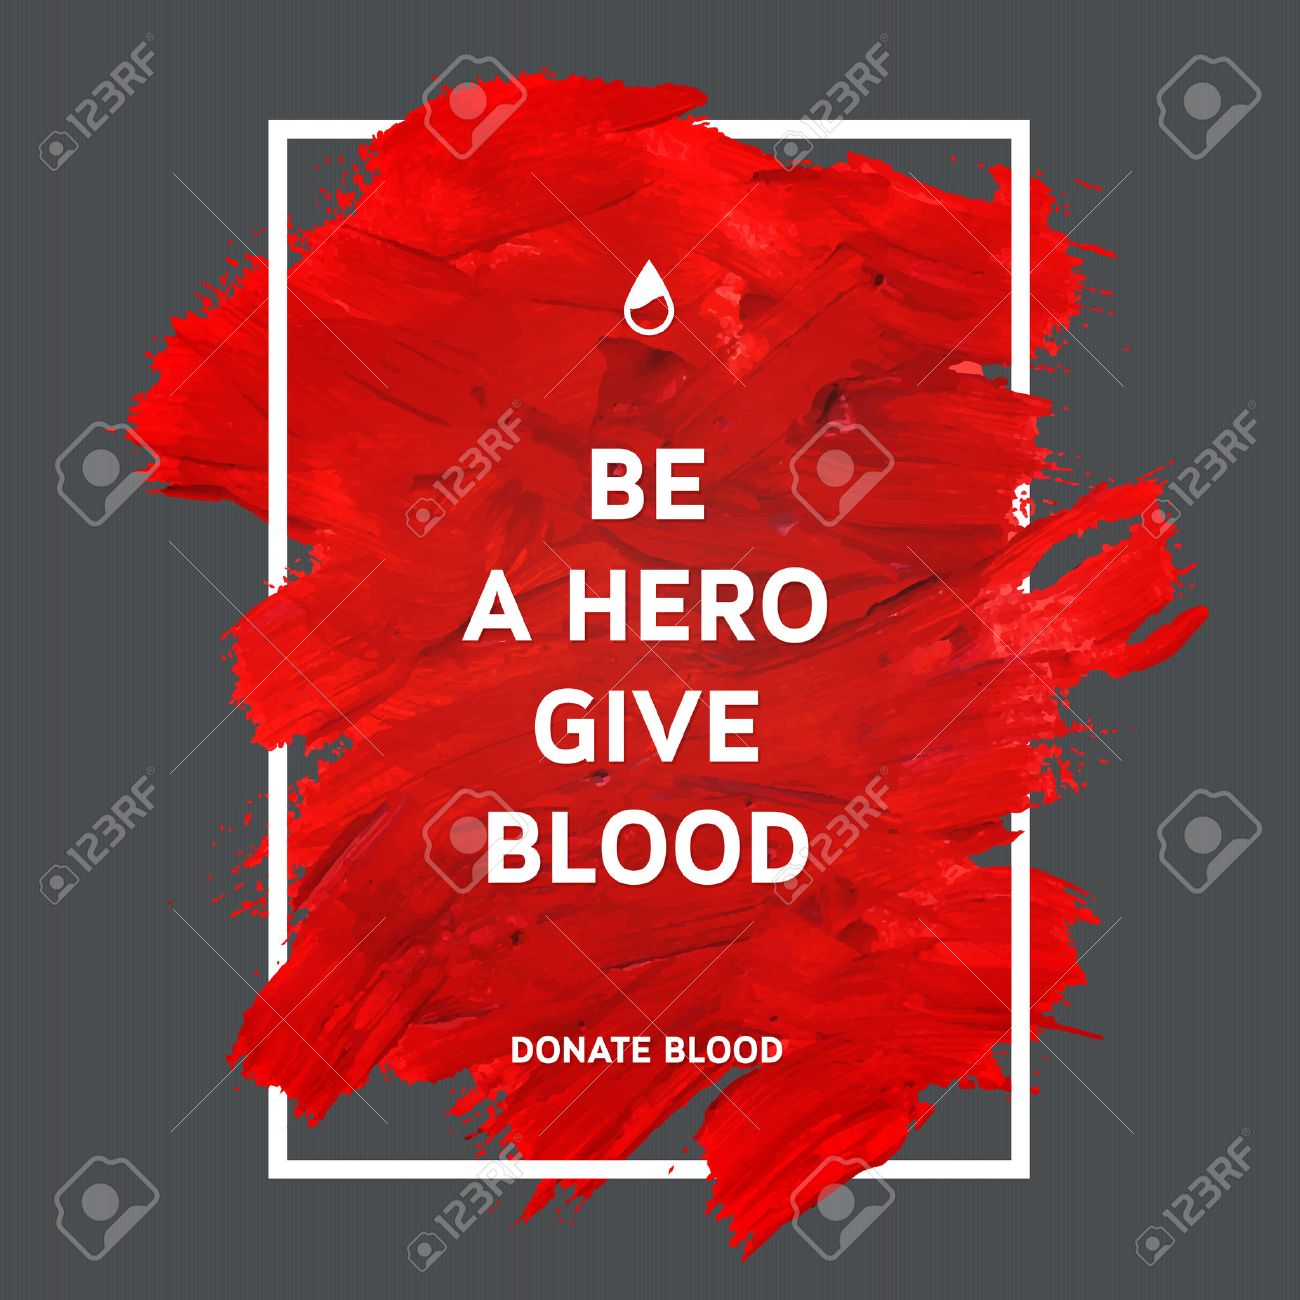 Creative Donate blood motivation information donor poster. Blood Donation. World Blood Donor Day banner. Red stroke and text. Medical design elements. Grunge texture. - 40912183